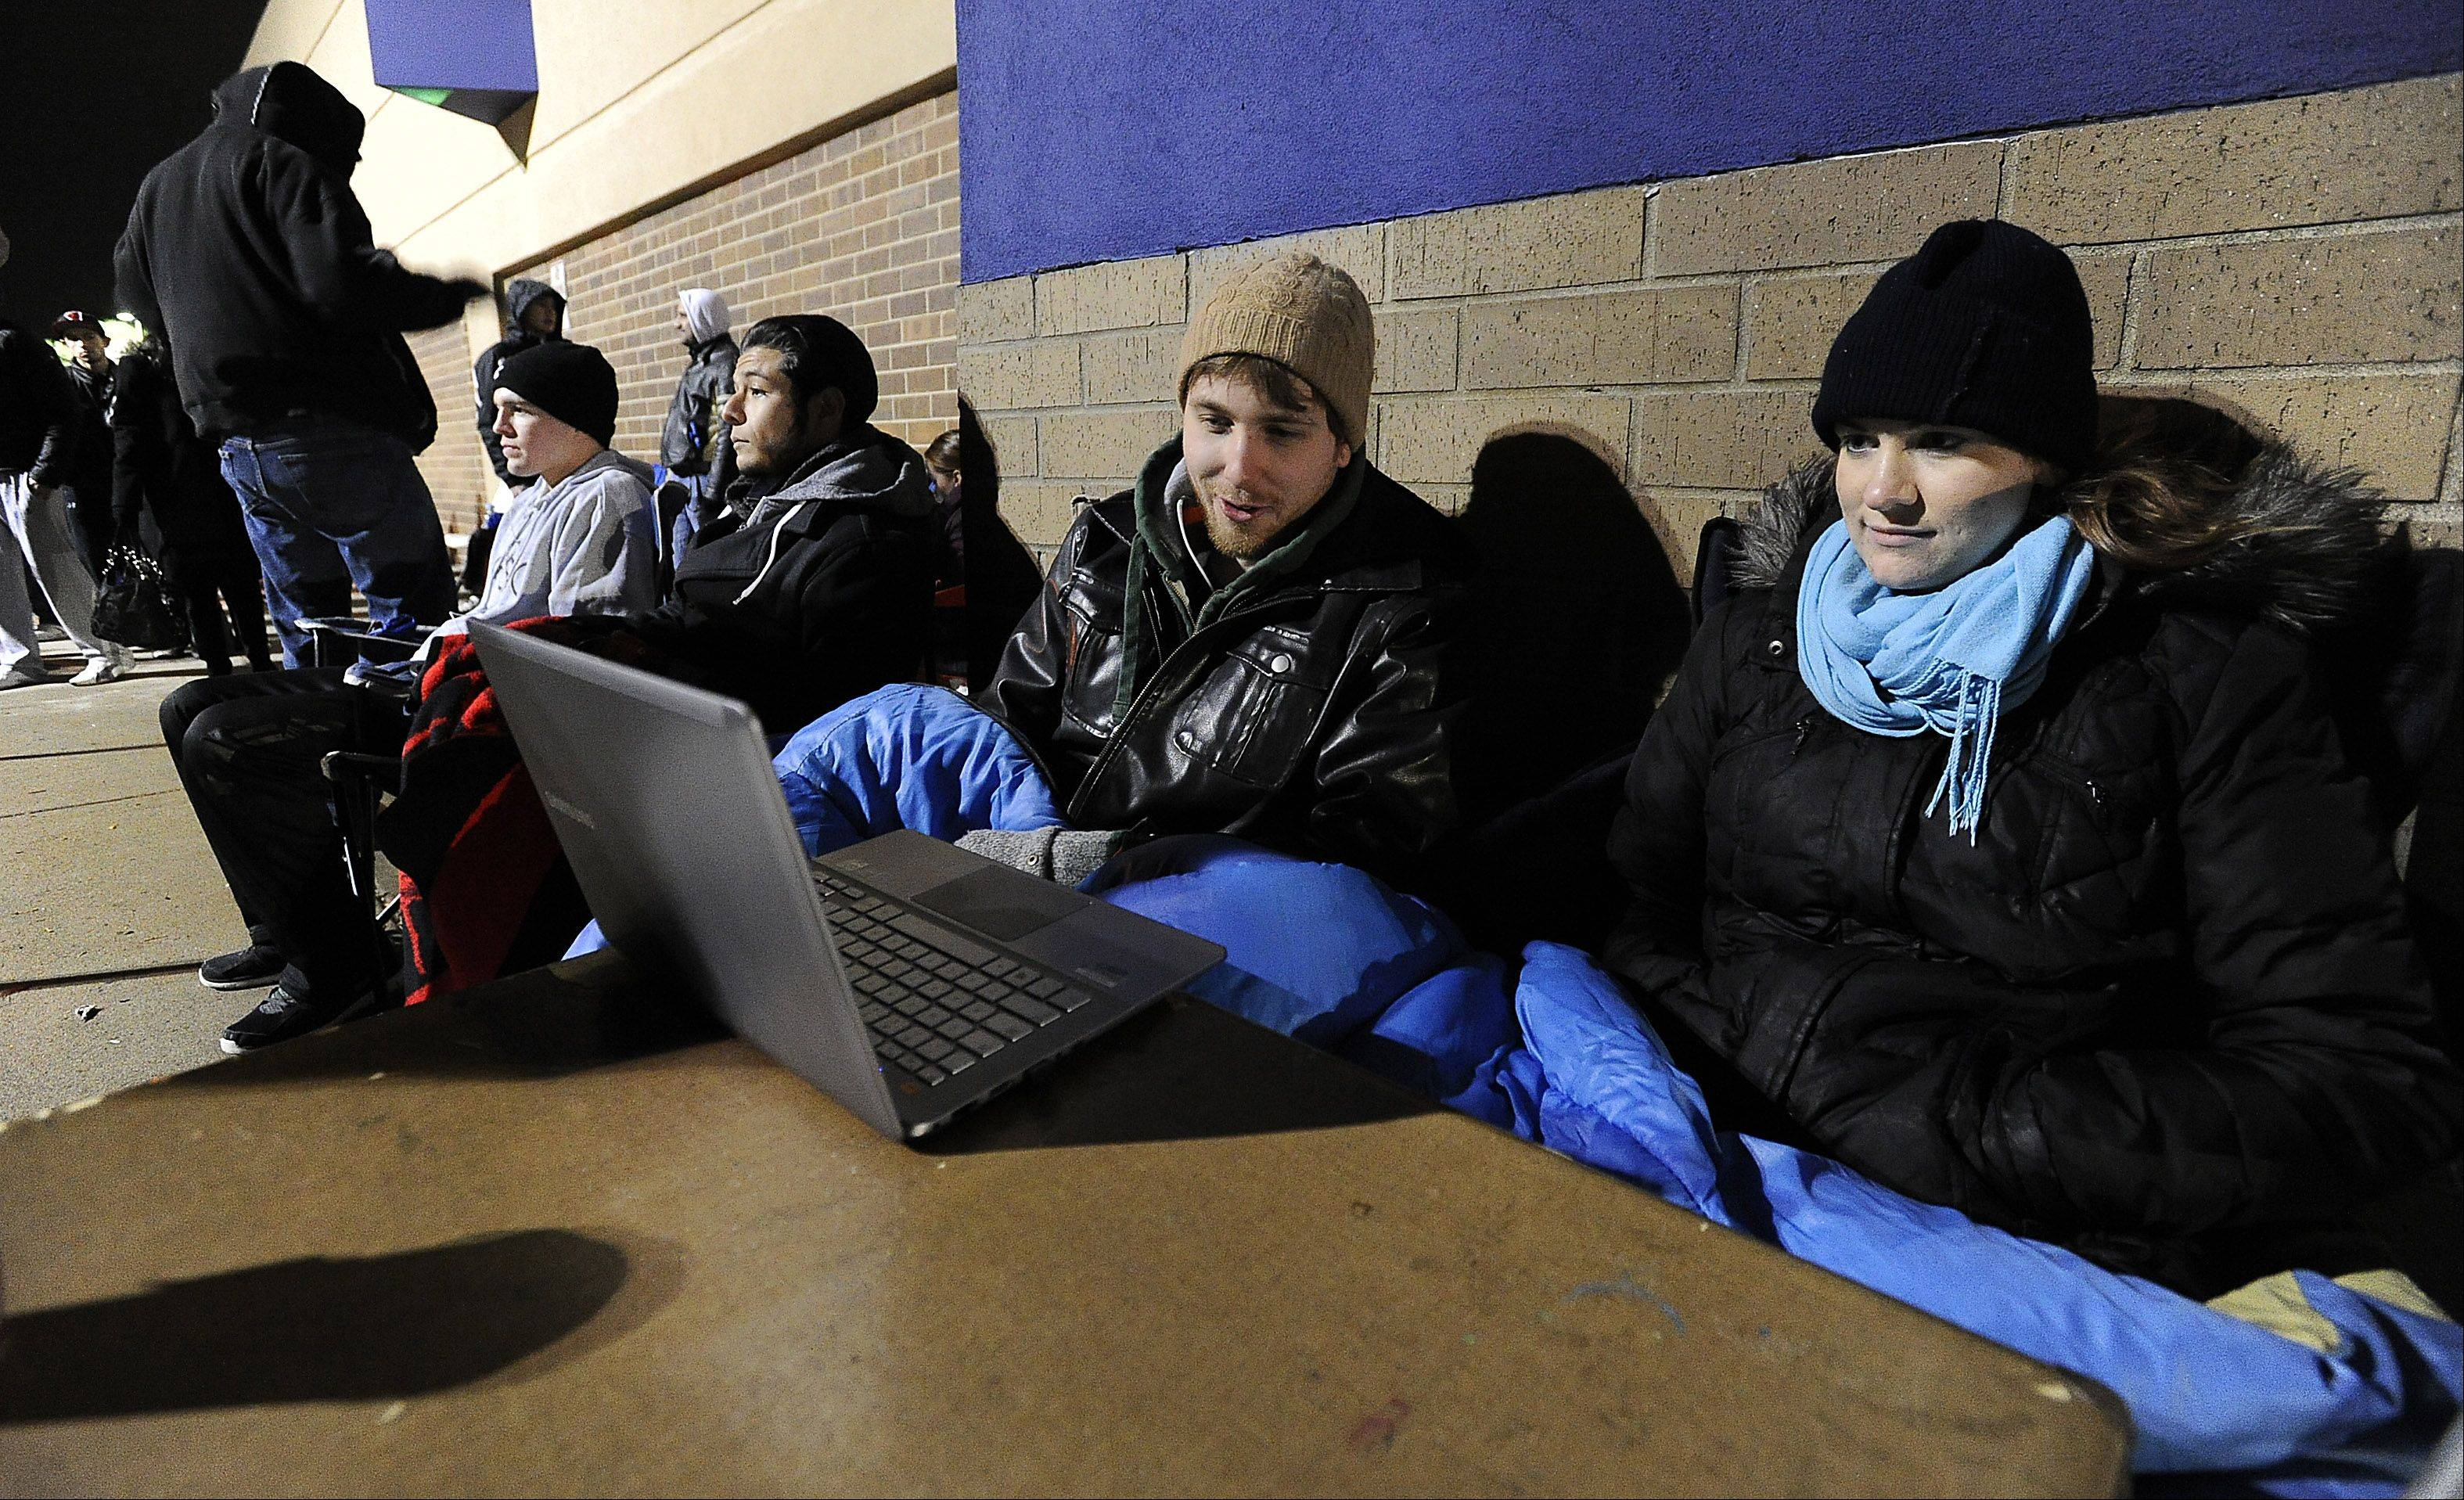 Brian Gates of Arlington Heights and Lauren Gates of Chicago were the first in line camping out at Best Buy in Arlington Heights — starting at noon Thursday — waiting for the new Sony PlayStation 4 to be sold at midnight. To pass the time they watched streaming videos on their computer.